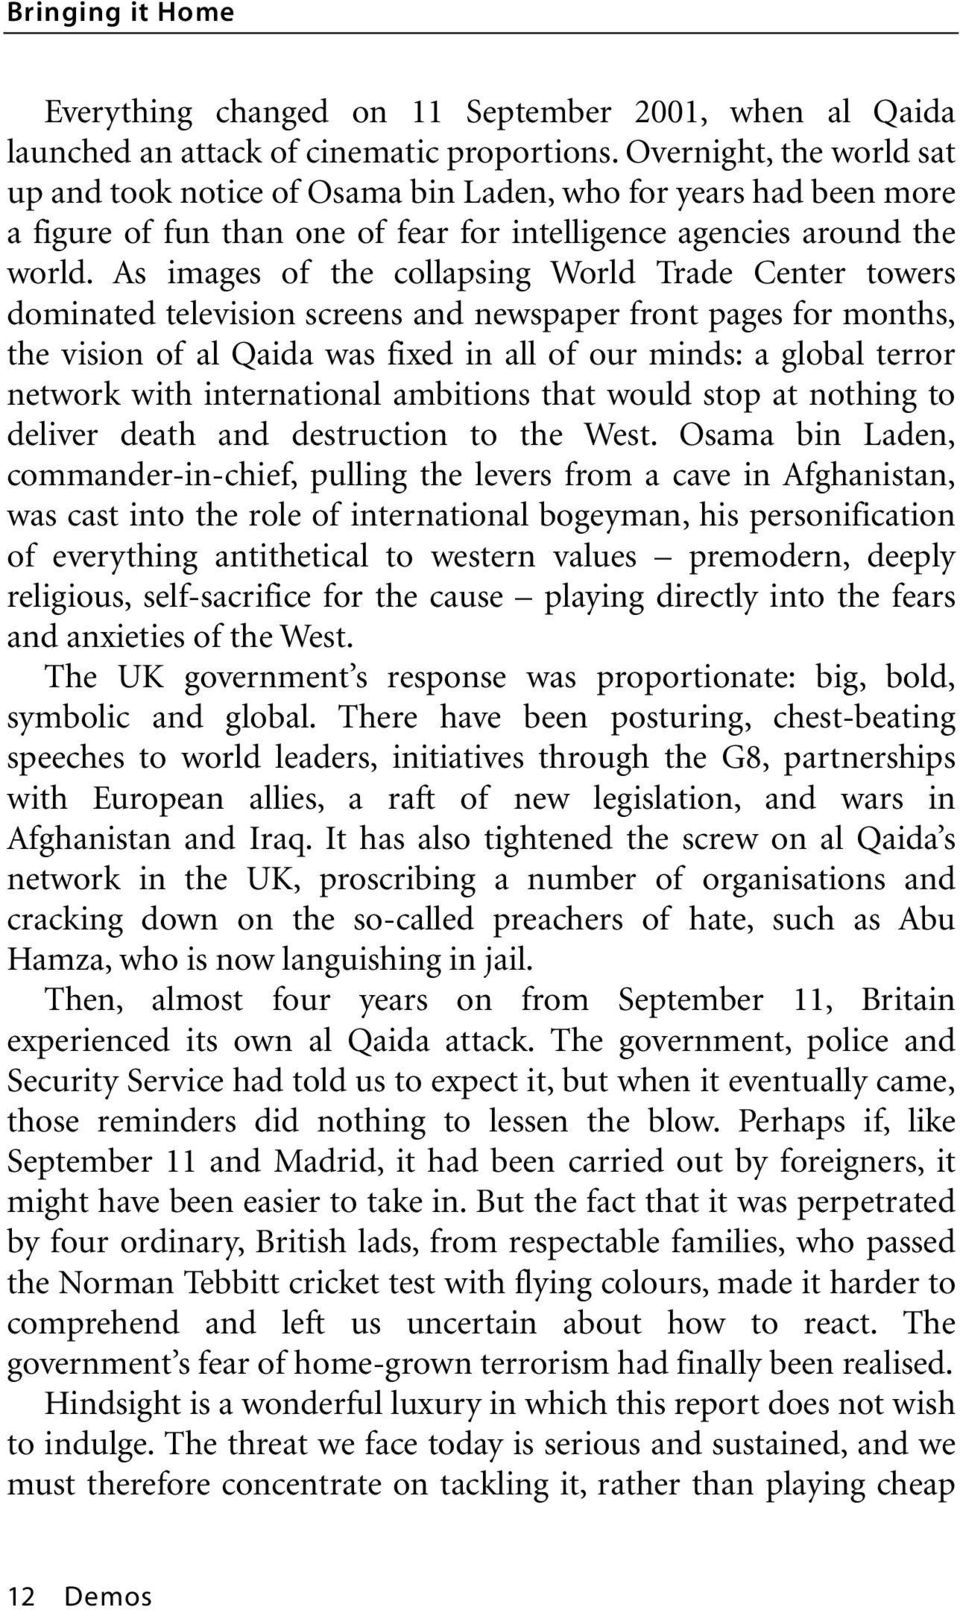 As images of the collapsing World Trade Center towers dominated television screens and newspaper front pages for months, the vision of al Qaida was fixed in all of our minds: a global terror network